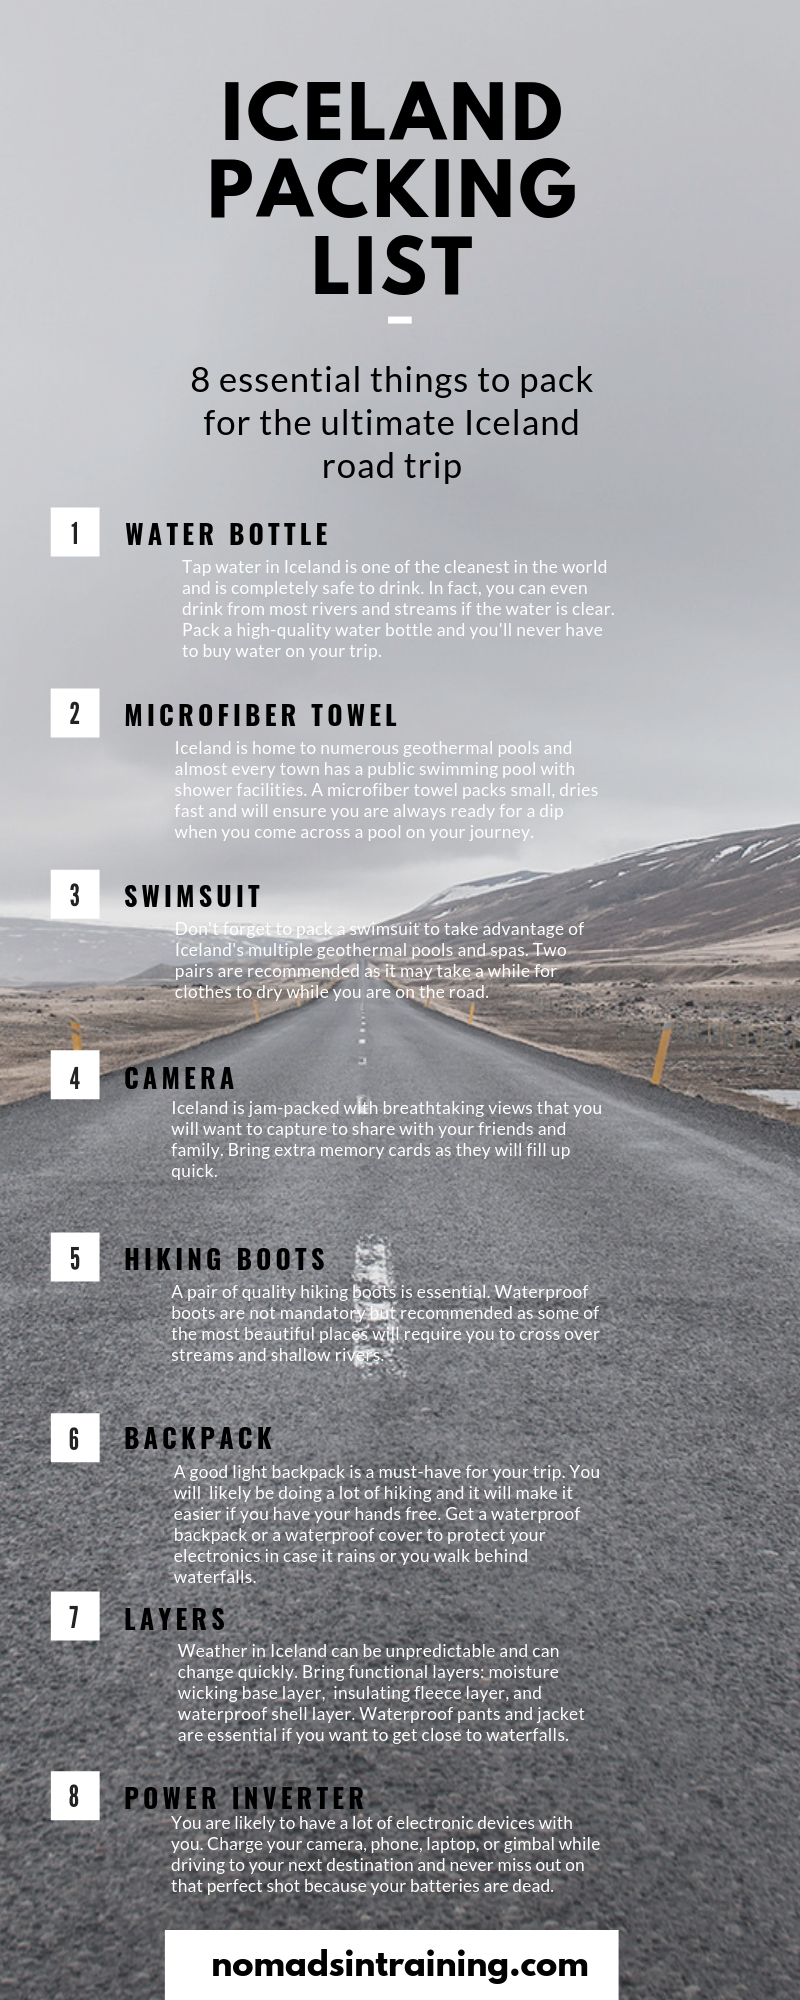 The ultimate packing list for Iceland road trip